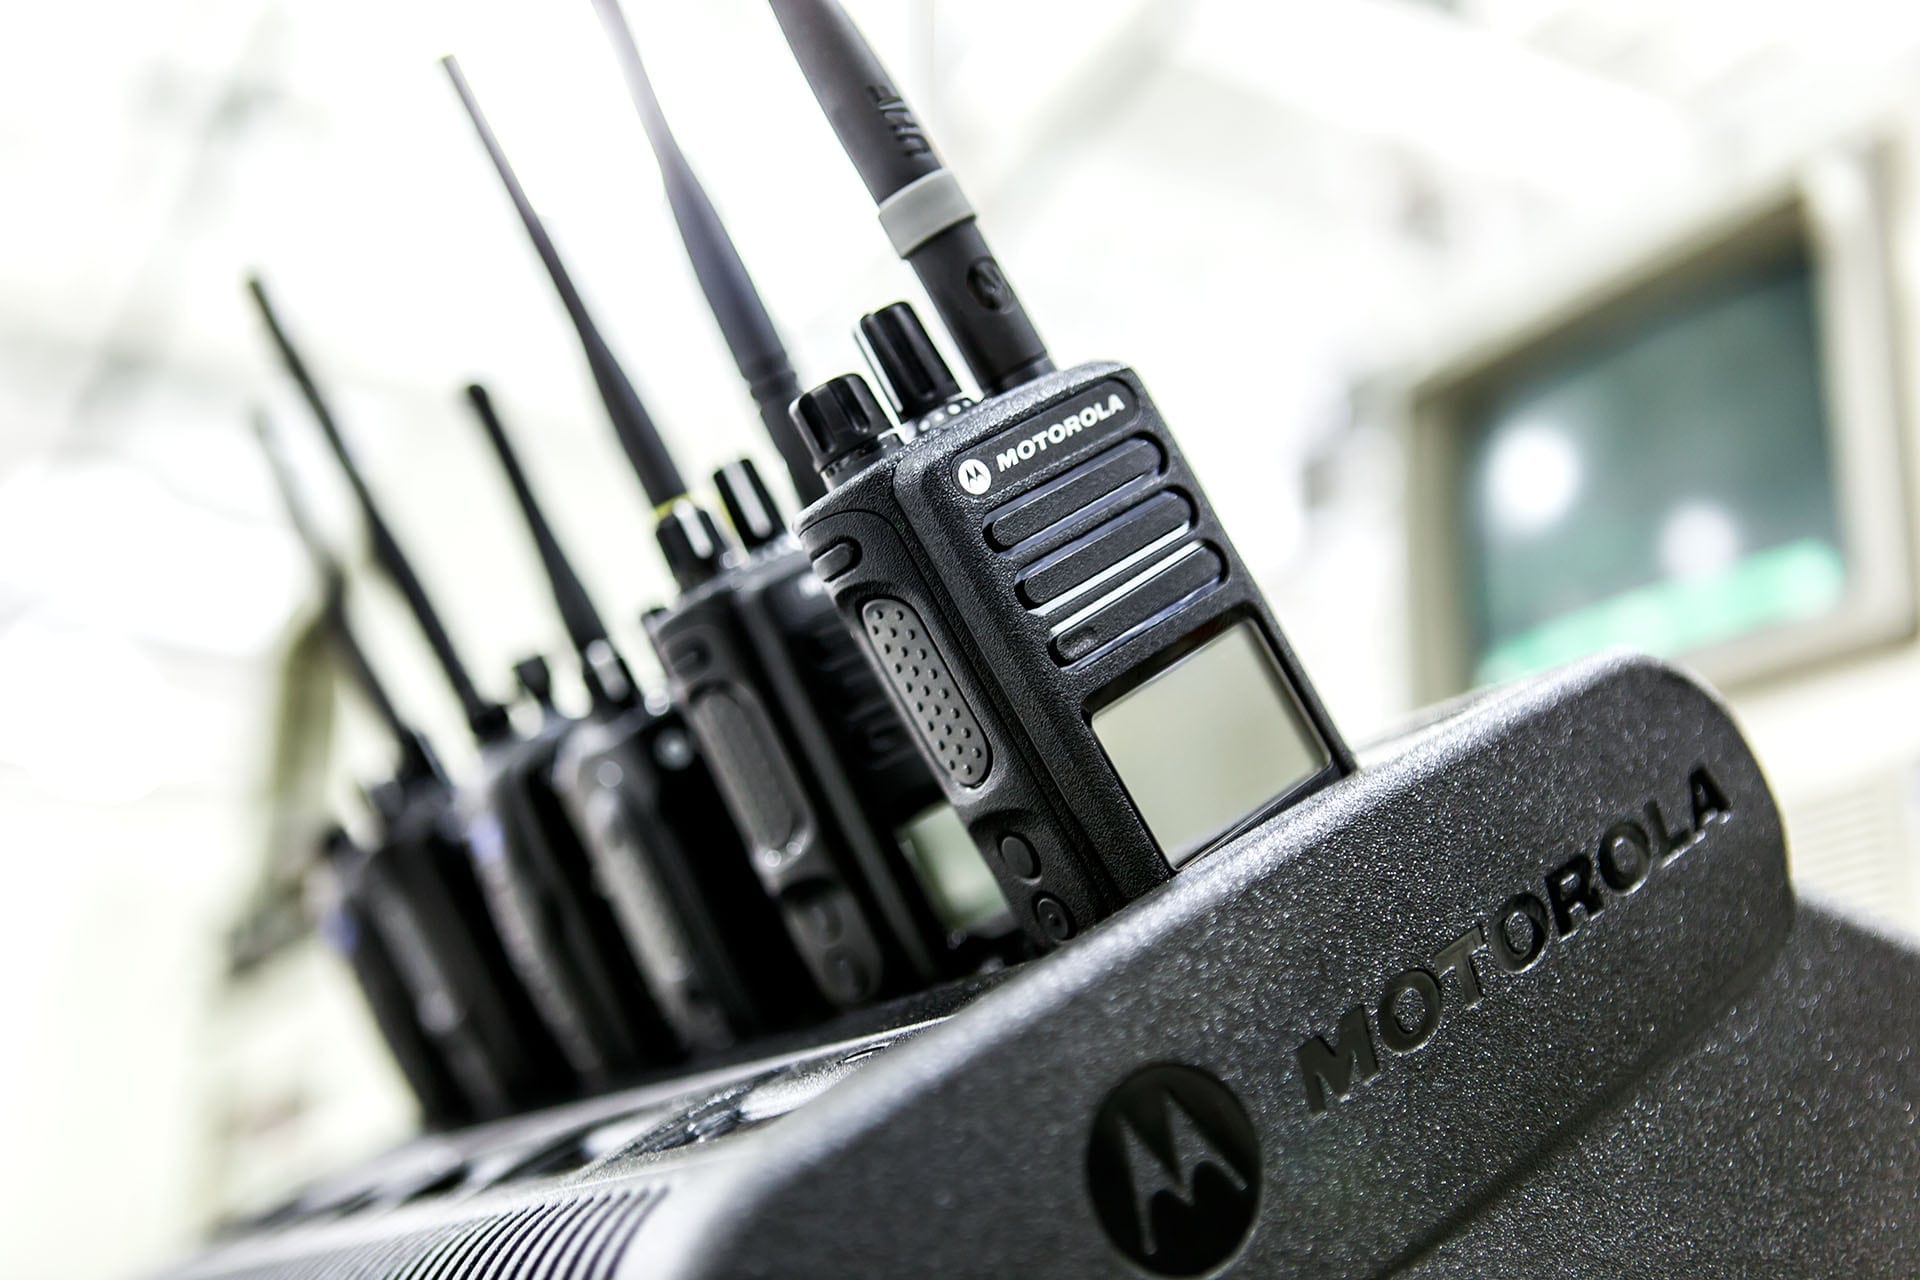 Motorola_Two_Way_Radio_Wisconsin